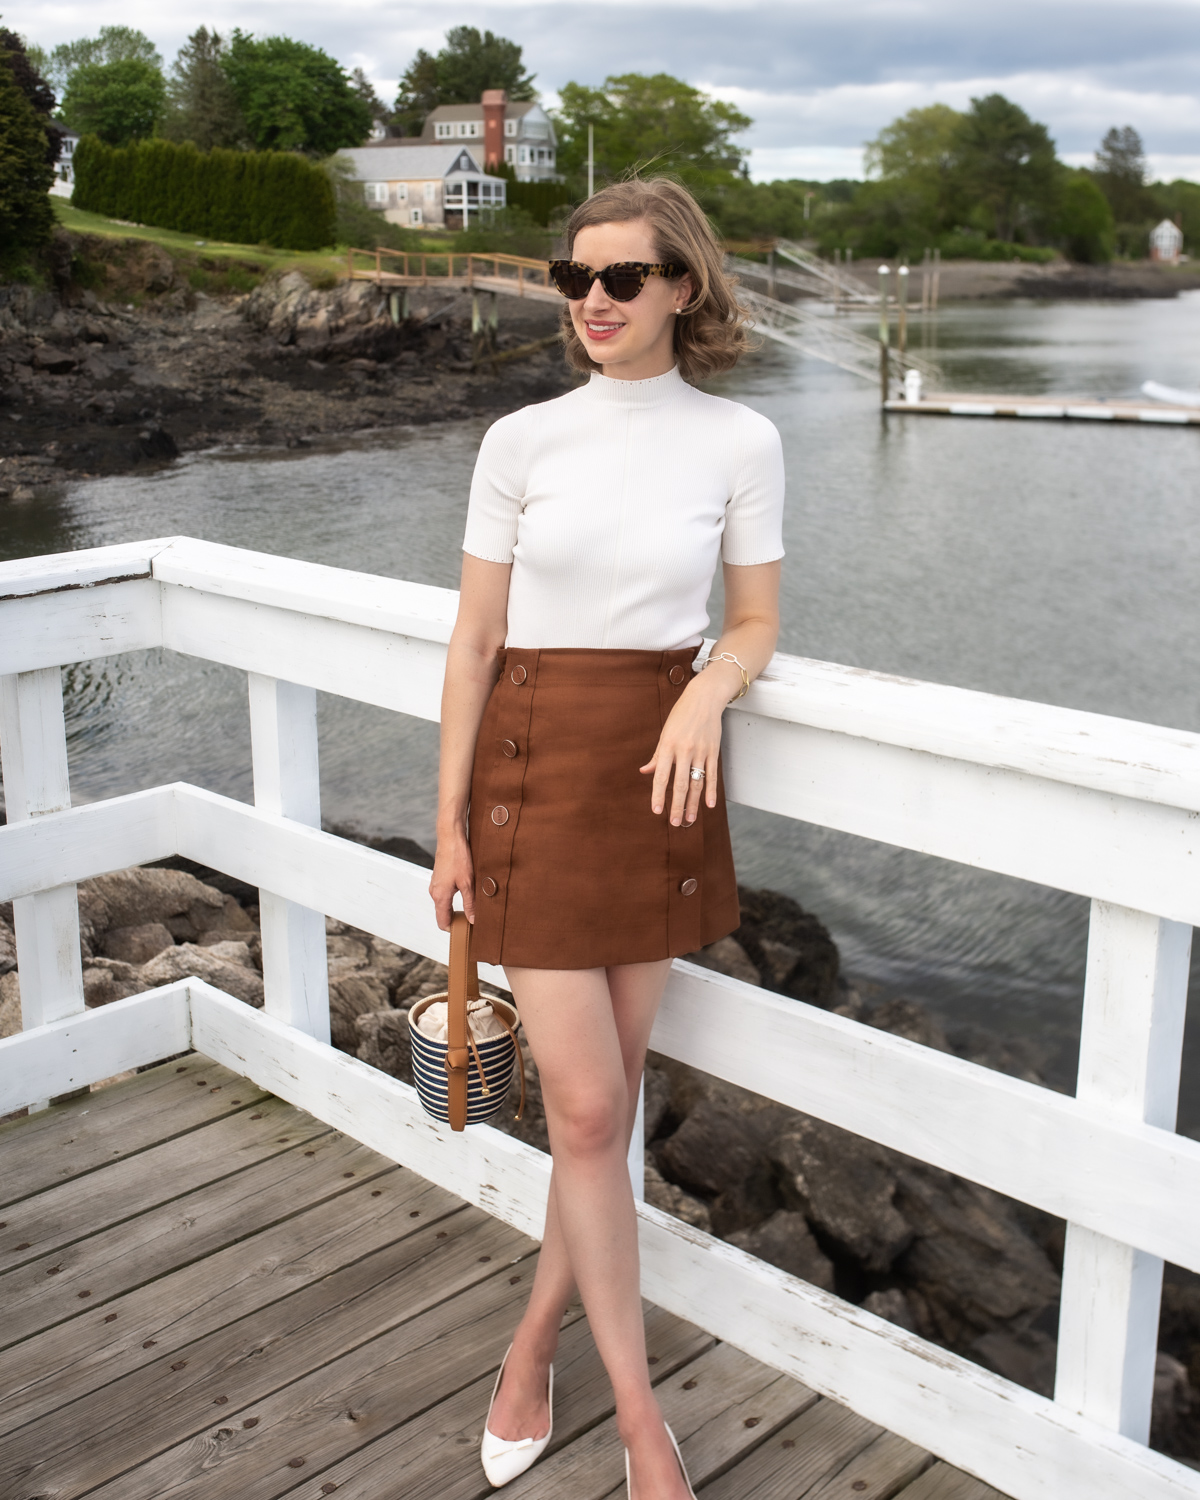 Stacie Flinner Daily Look Pucci Mini Skirt